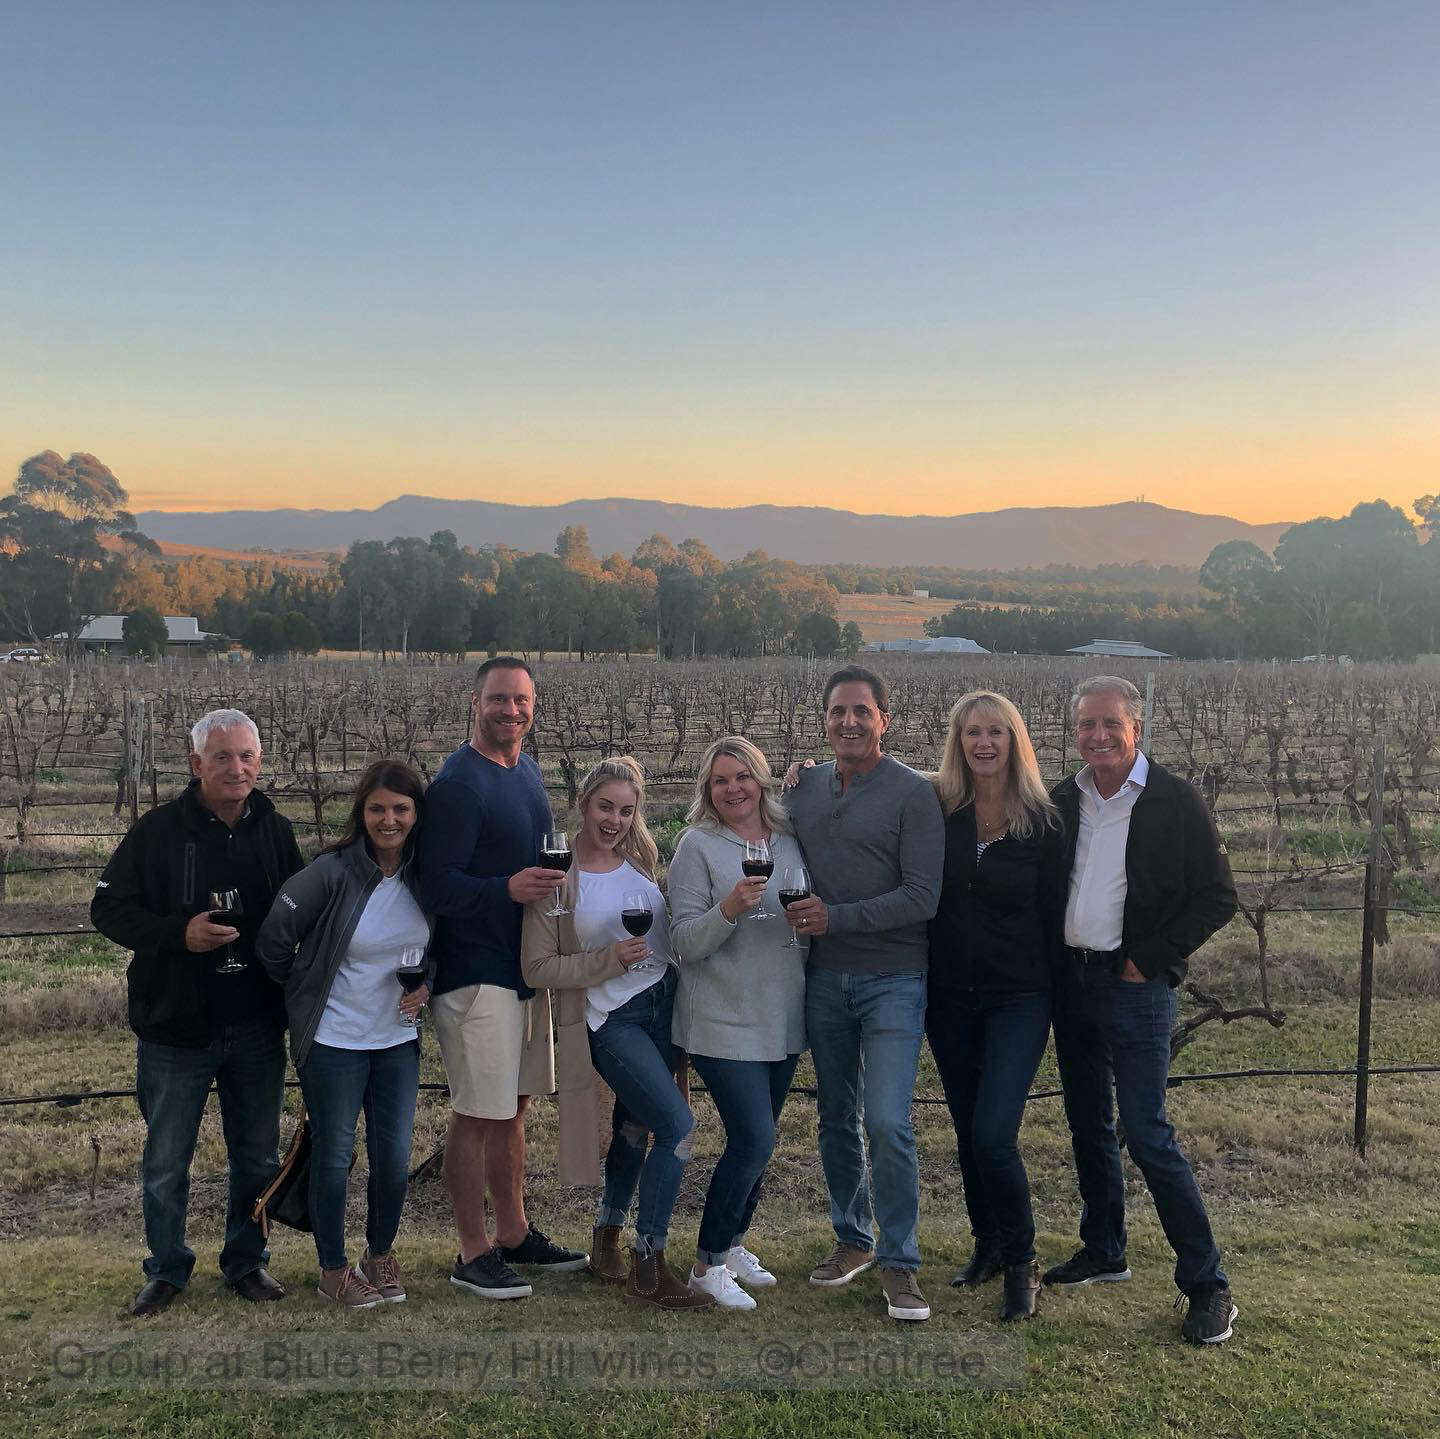 A Group at Blue Berry Hill wines at unset with vineyard in the background